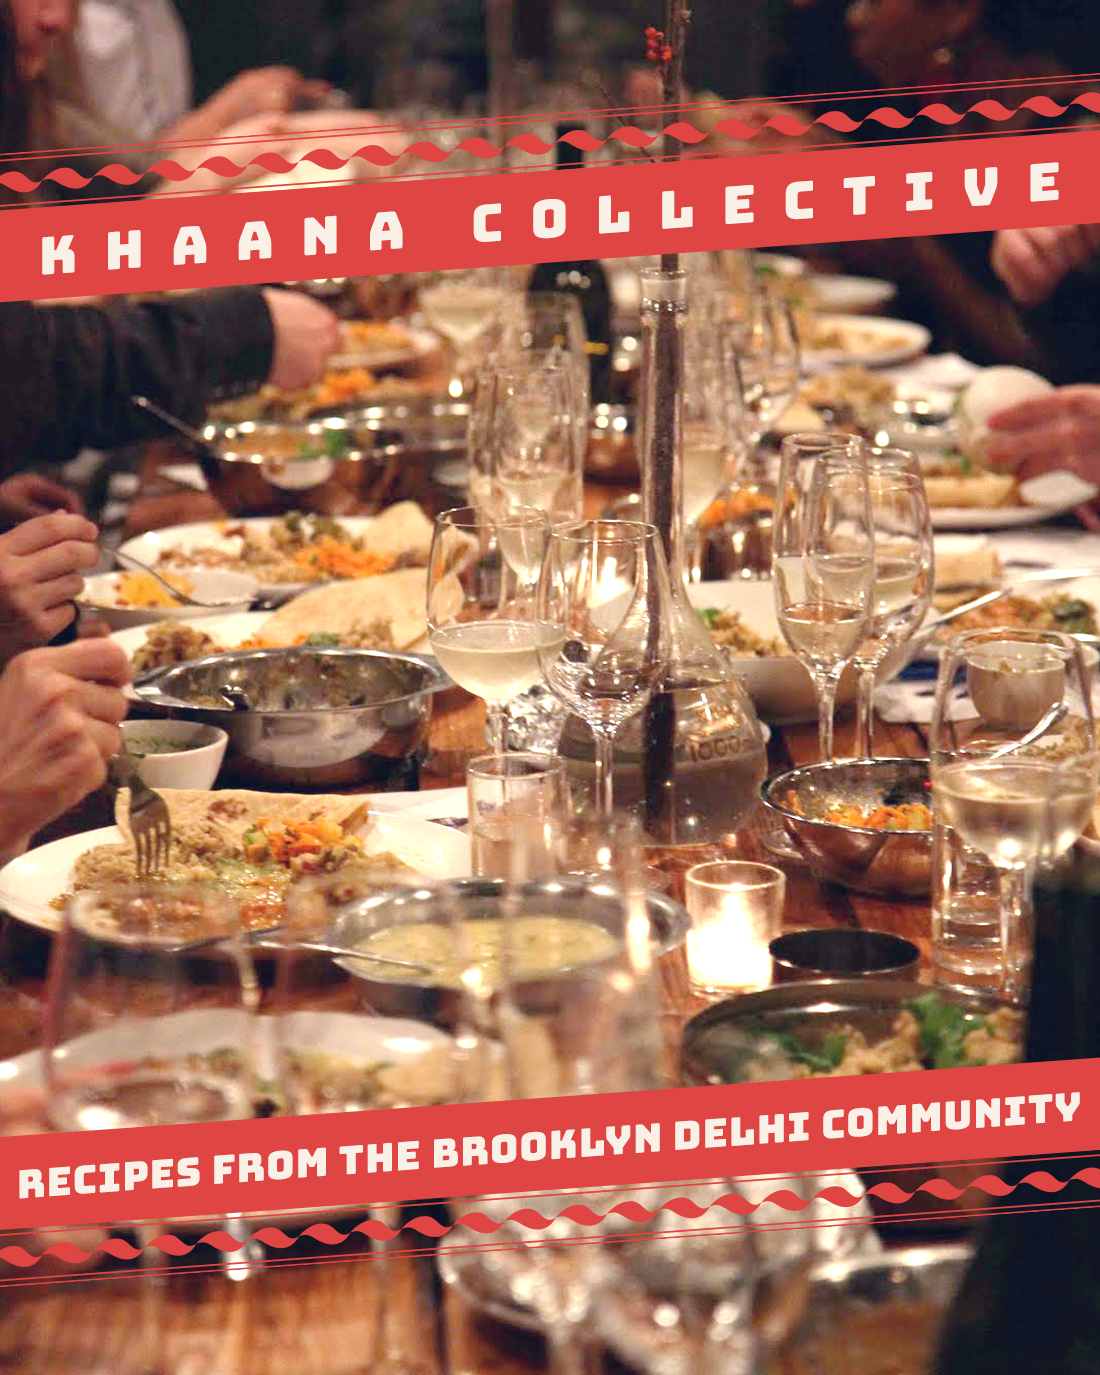 Khaana Collective Recipe Zine - Coming Soon!